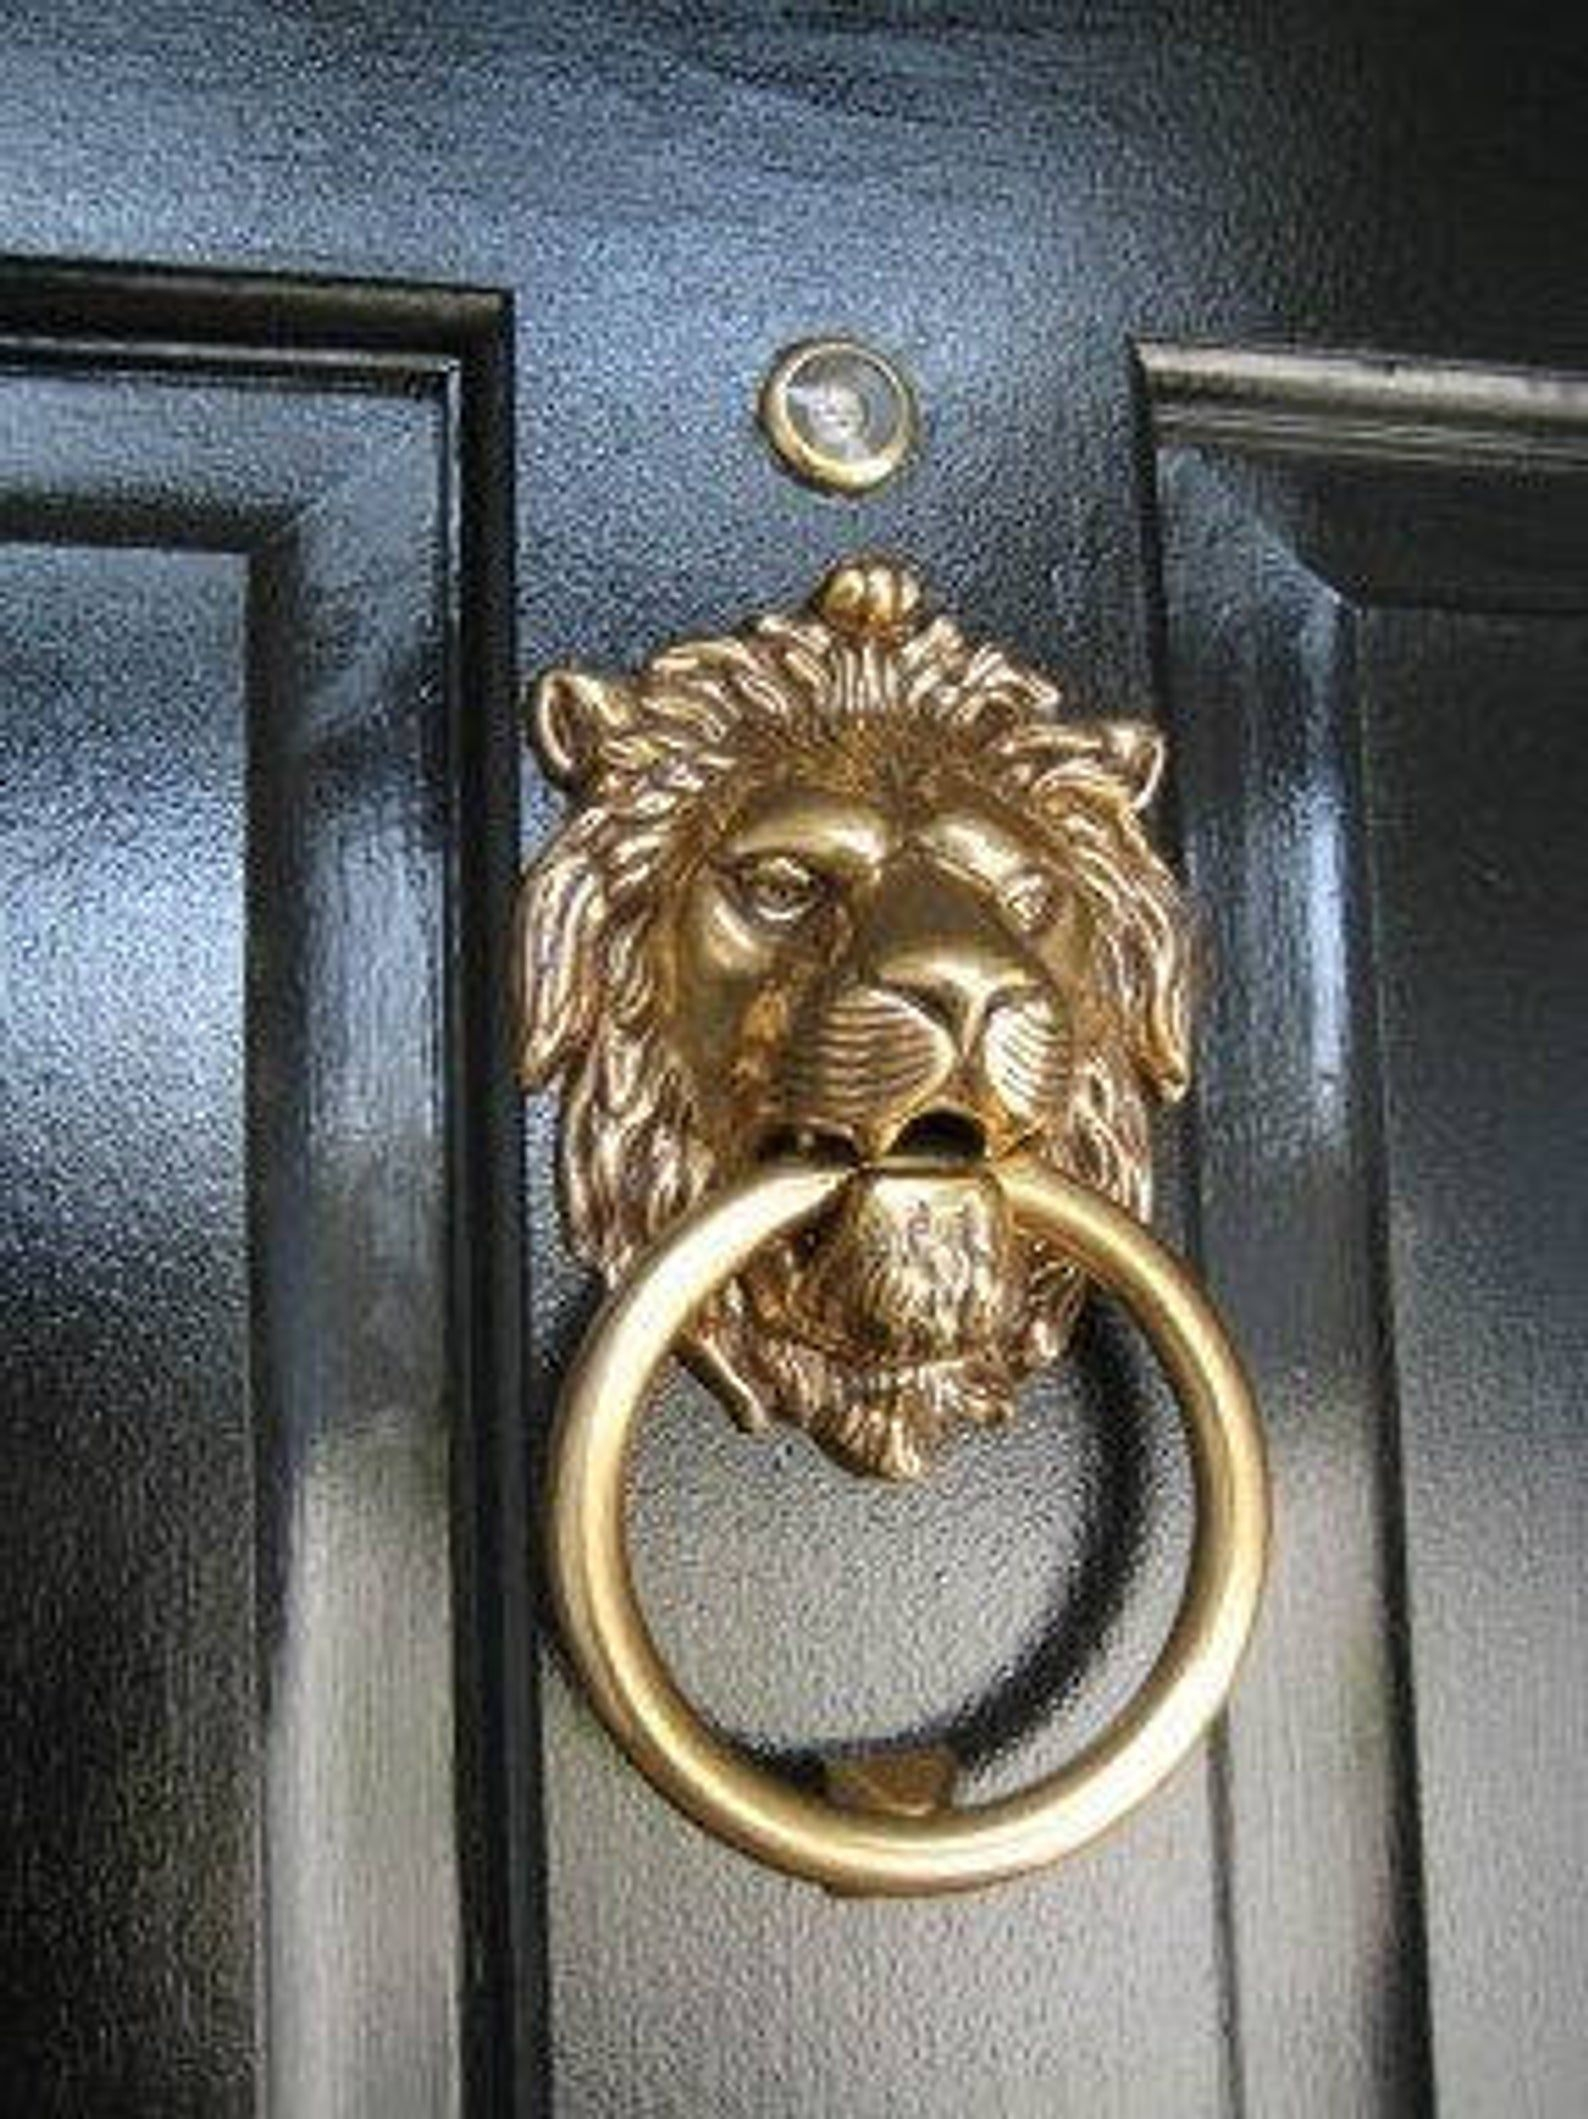 Charmant Lion Head Door Knocker Ideas The Decoras Jchansdesigns